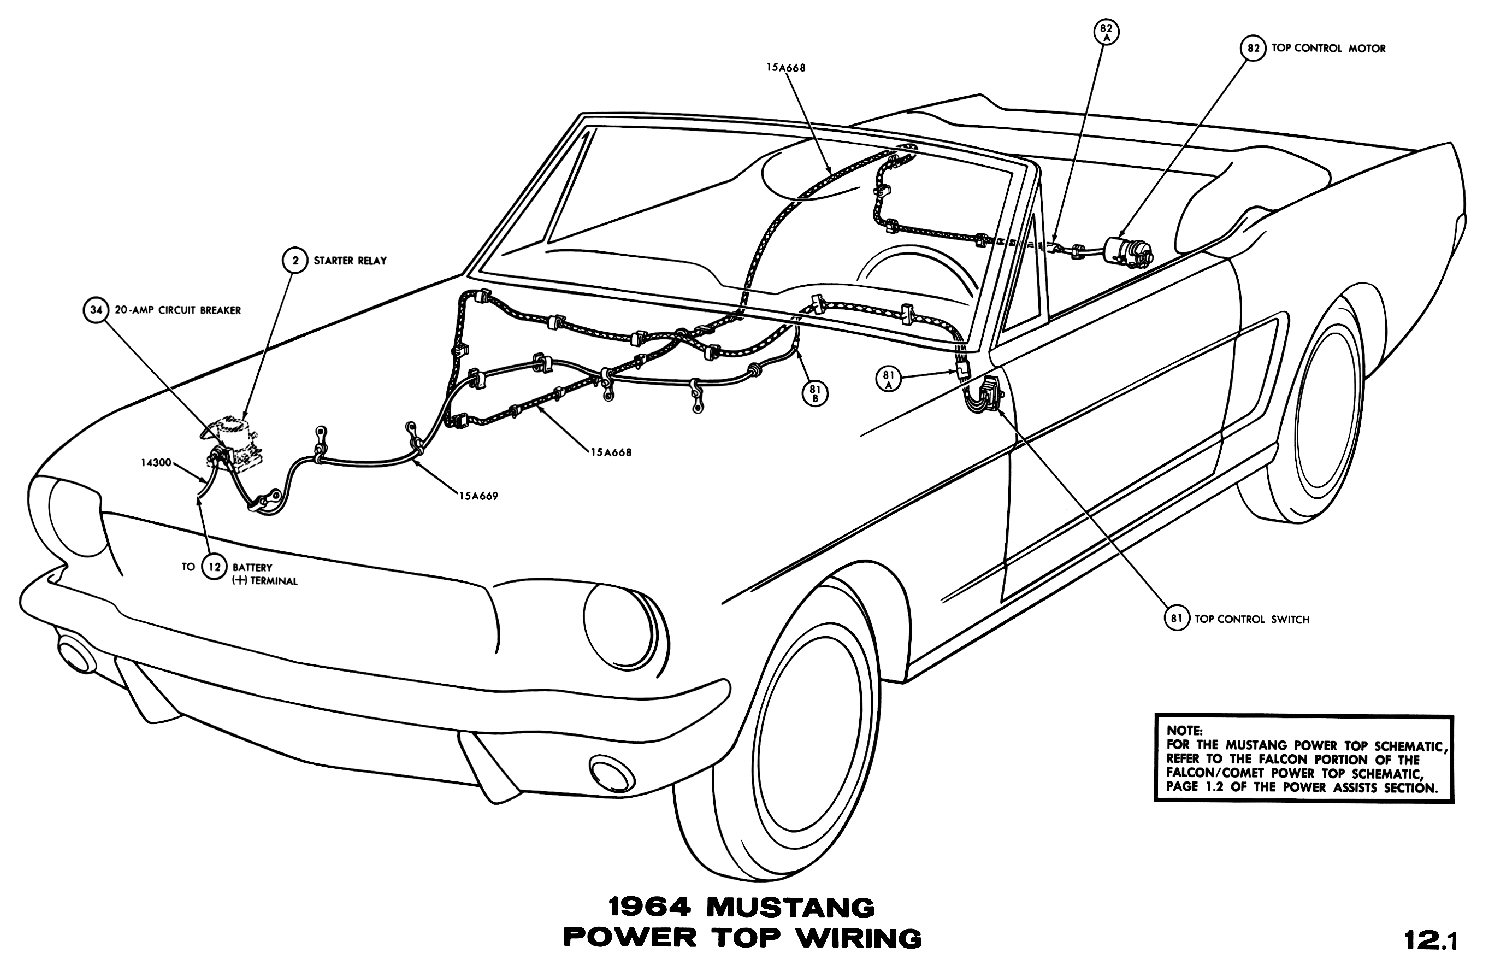 El Ritningar Automotive Diagrams Archives Page 91 Of 301 Wiring 1964 Mustang Power Top